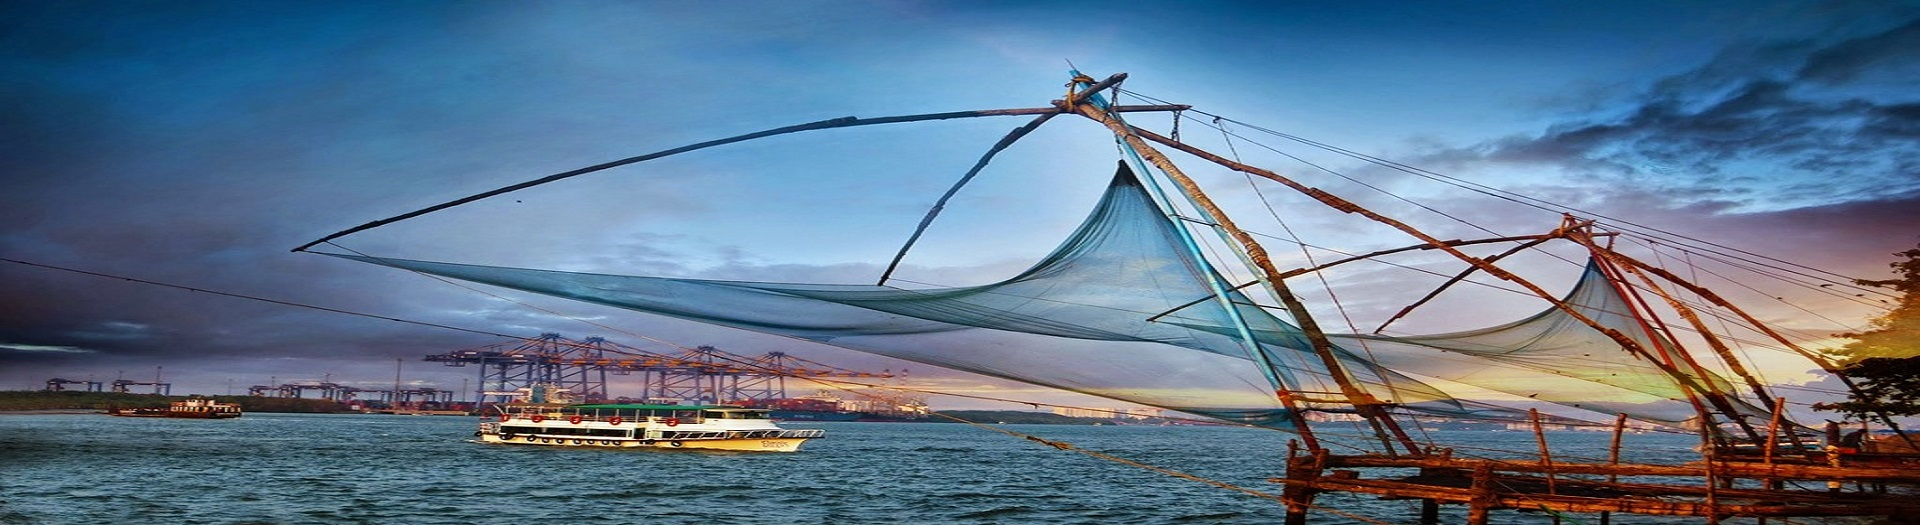 Fort Kochi China Net